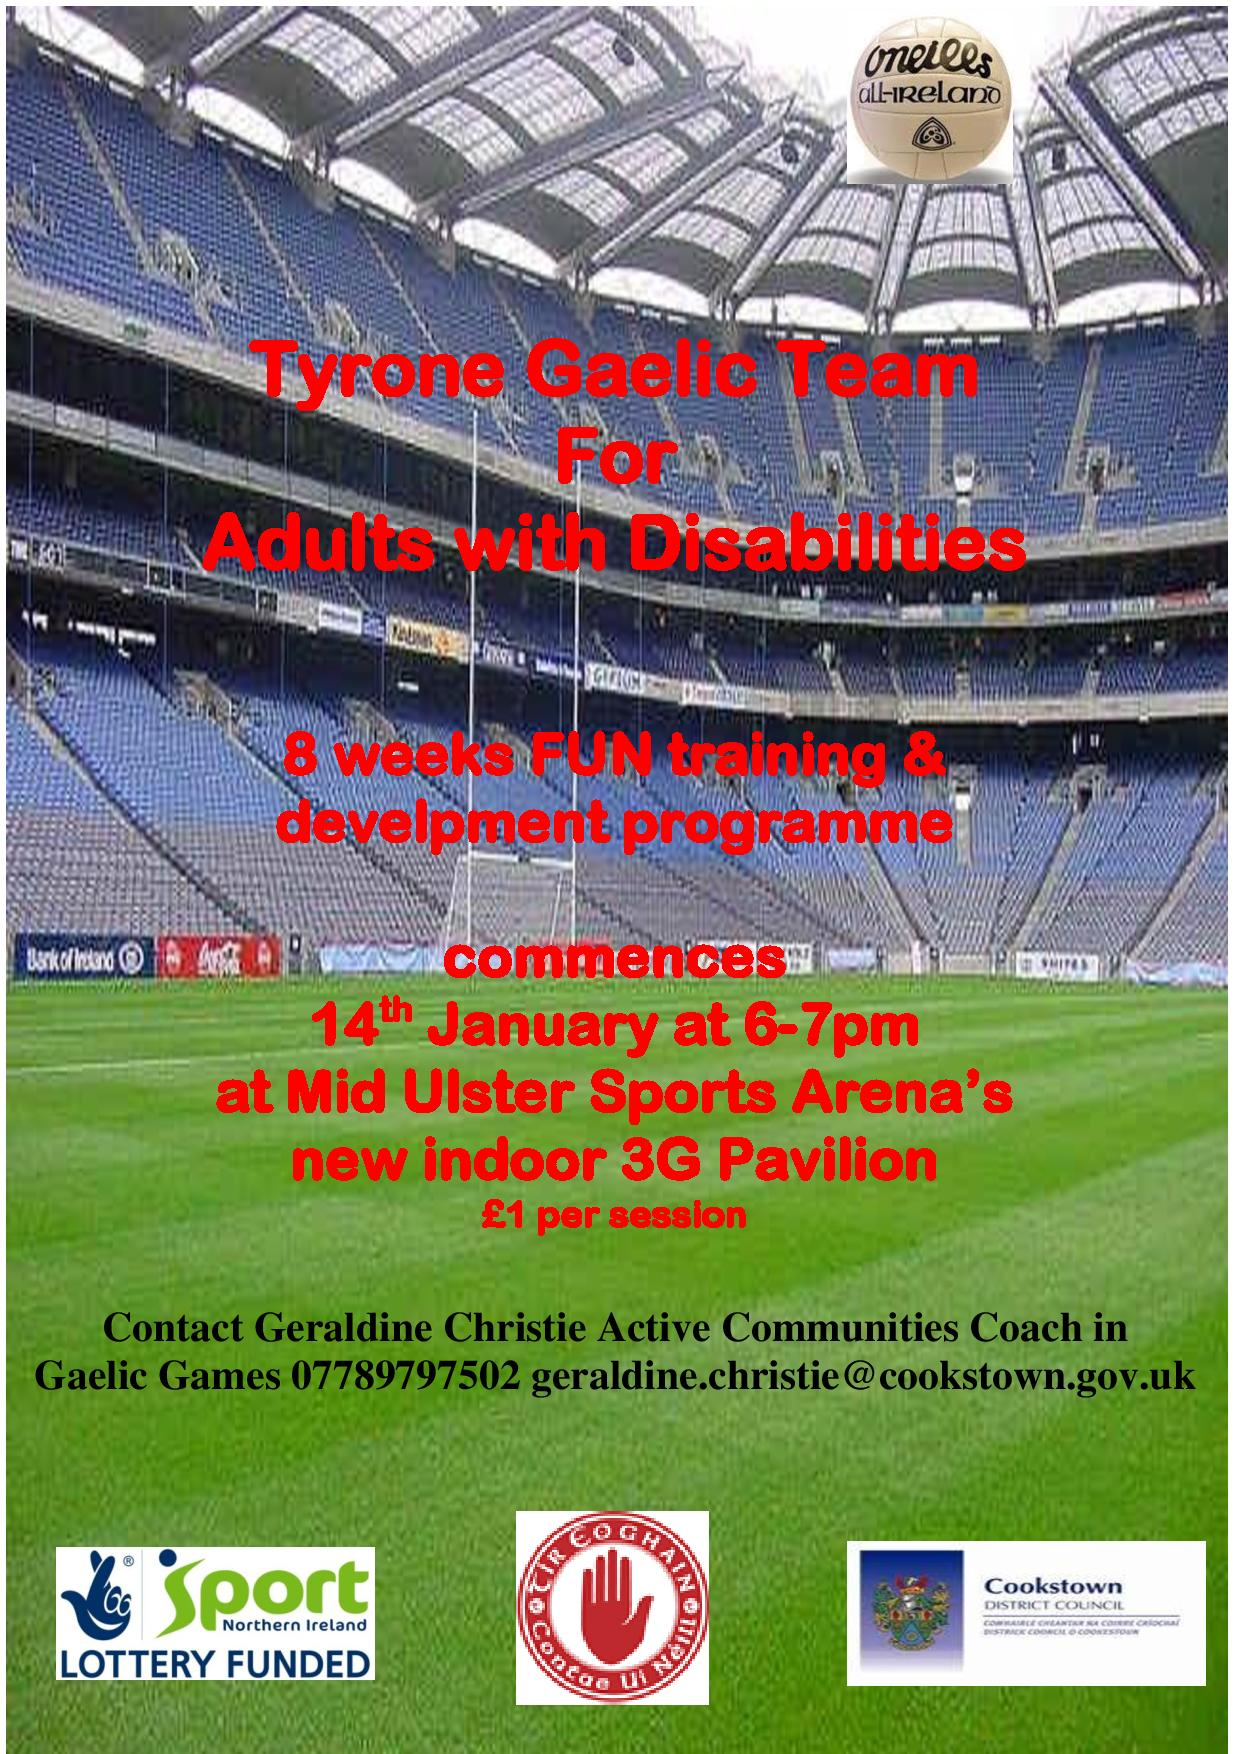 Gaelic Football for Adults with Disabilities